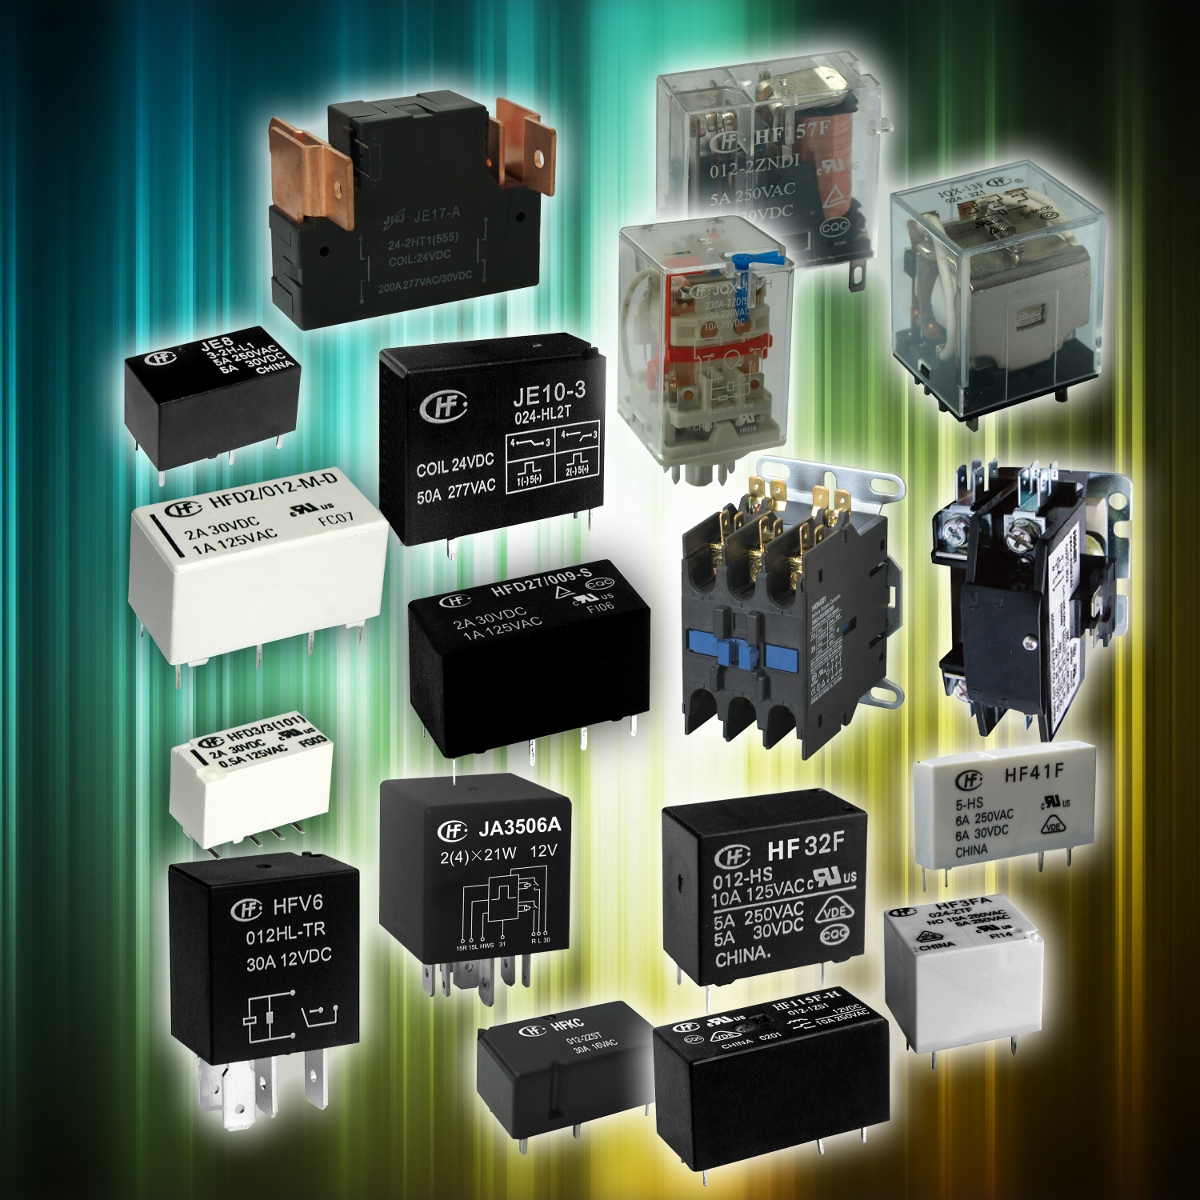 Complete Range of HONGFA Relays Available from Transonics - 160 series of relays - 40,000 different versions available